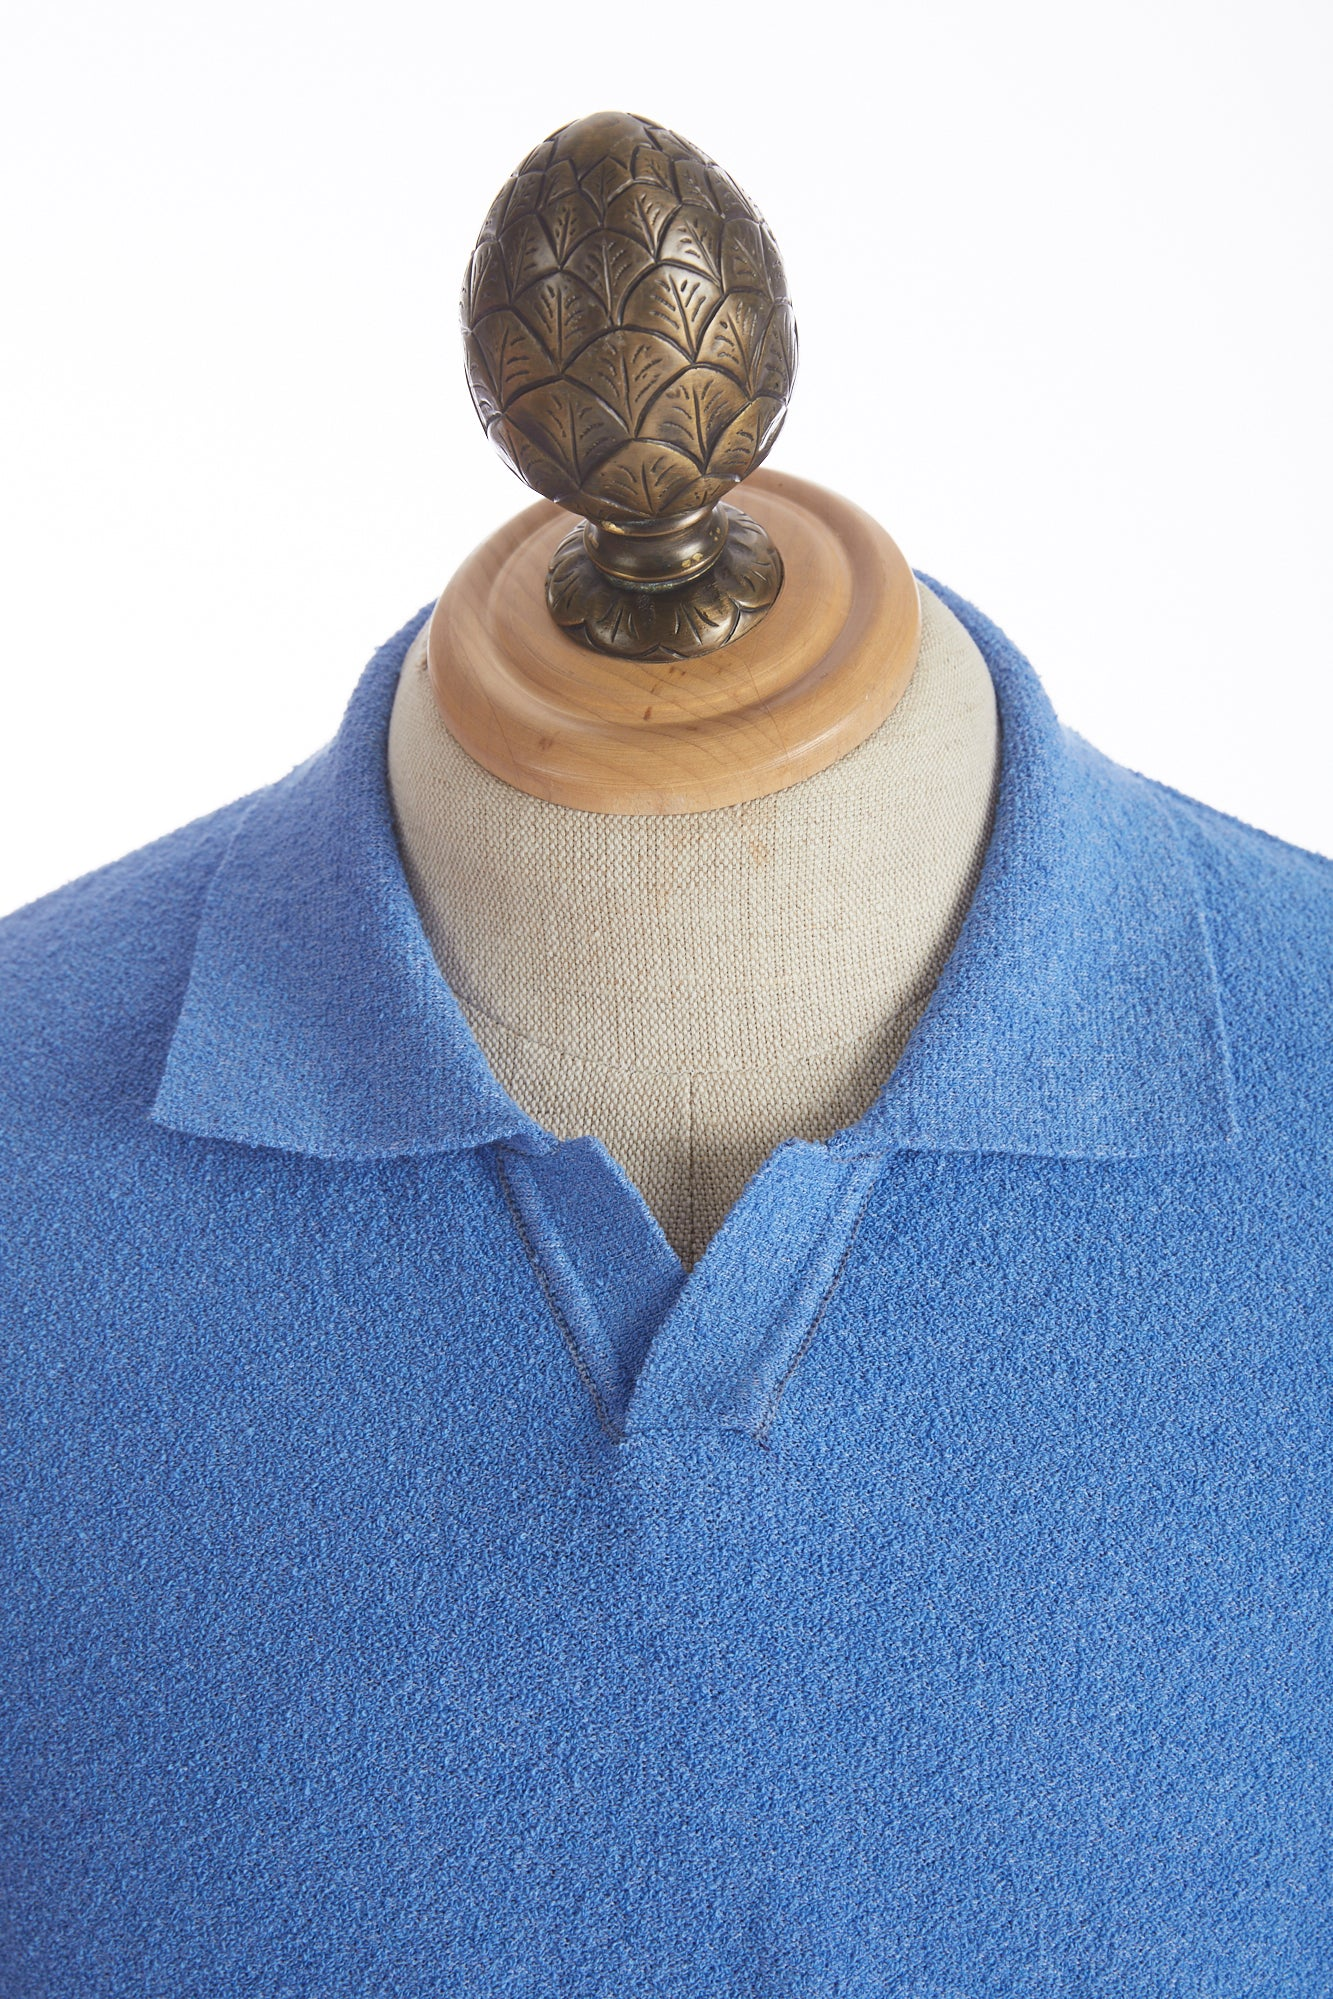 Phil Petter Baby Blue Terry Polo Shirt Collar